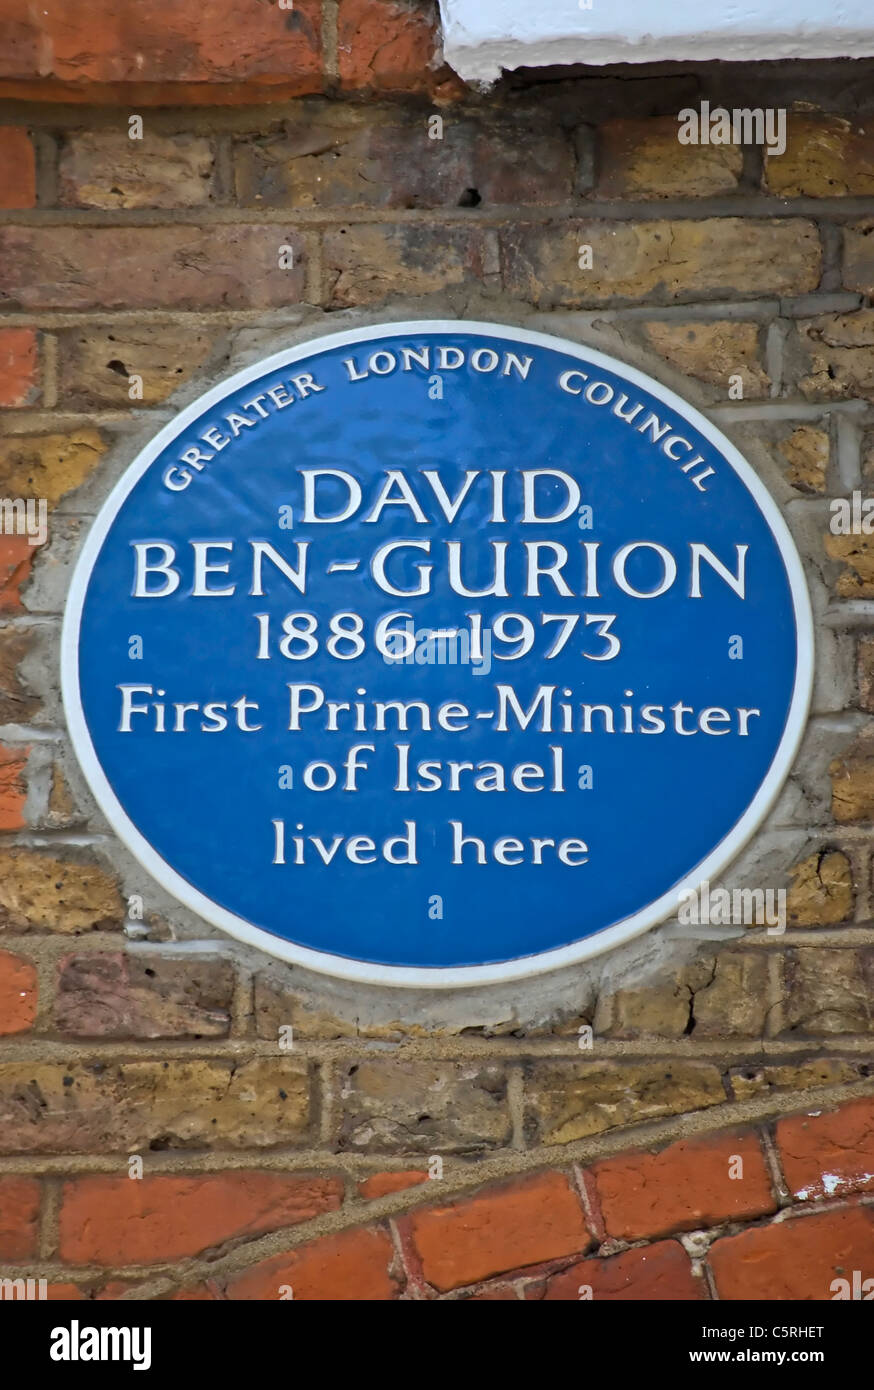 greater london council blue plaque marking a home of david ben-gurion, first prime minister of israel, in london, england Stock Photo